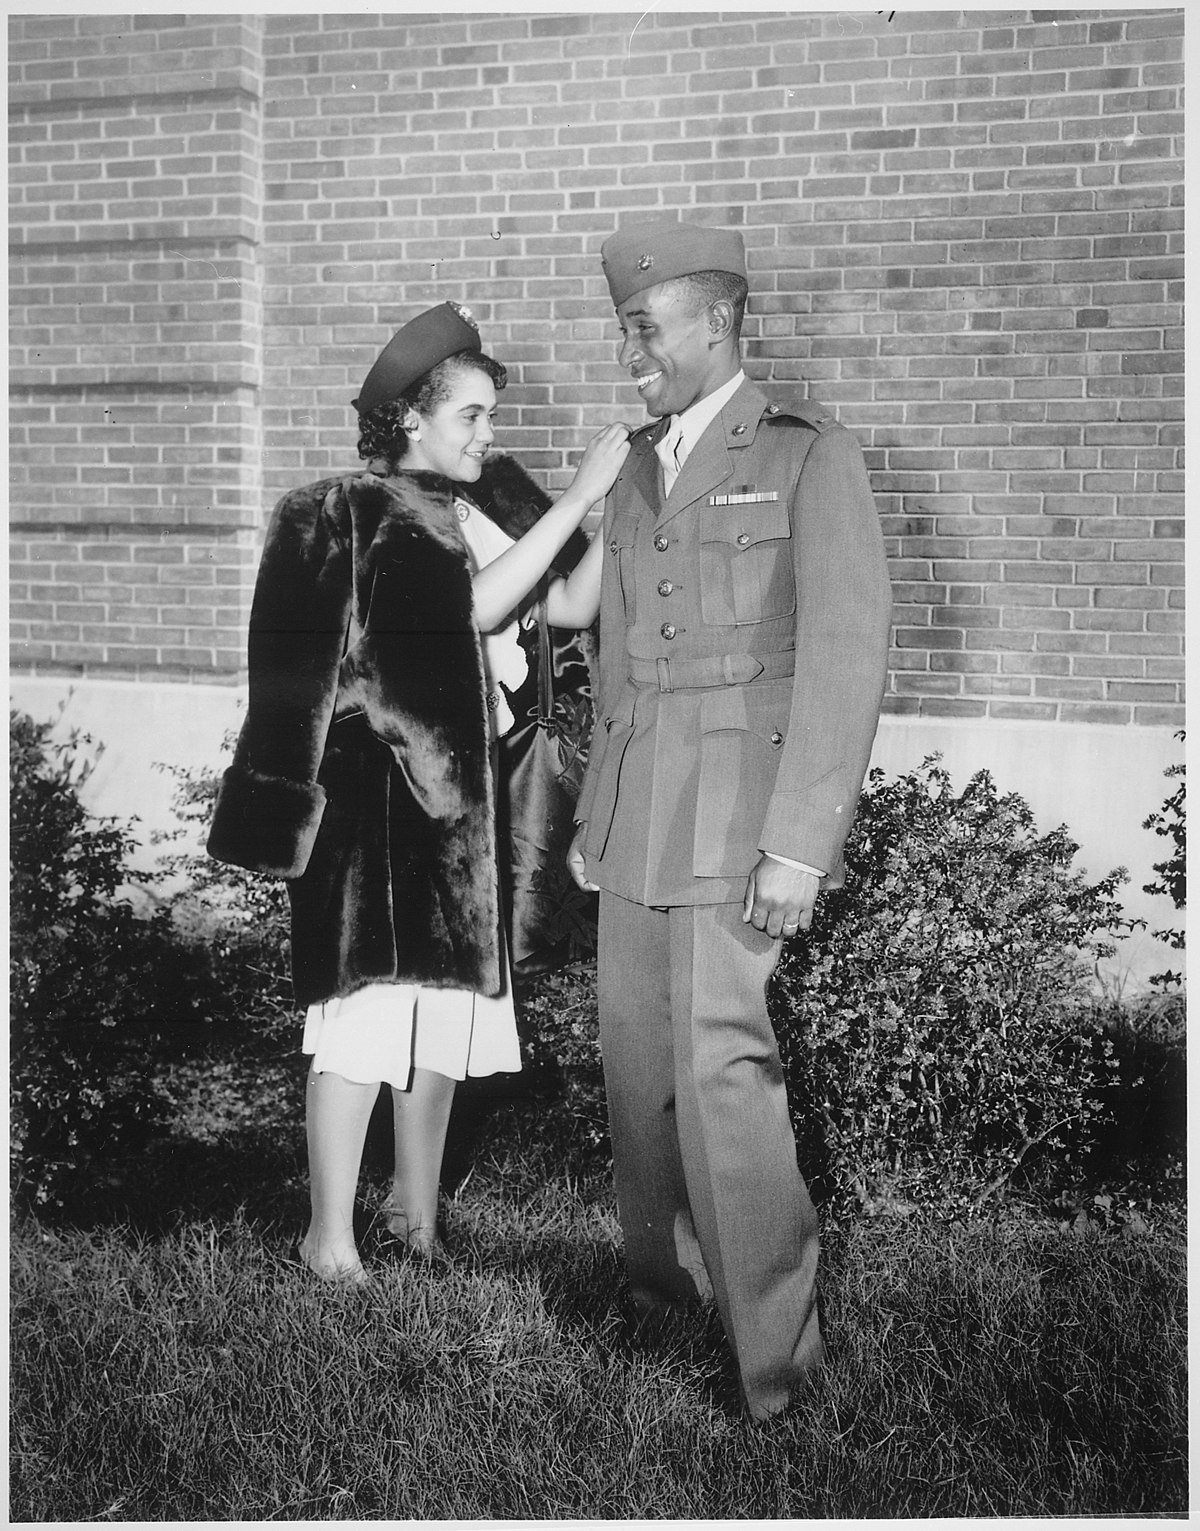 """File:""""The first Negro to be commissioned in the Marine Corps has his second lieutenant's bars pinned on by his wife. He is Fr - NARA - 532577.jpg - Wikimedia Commons"""